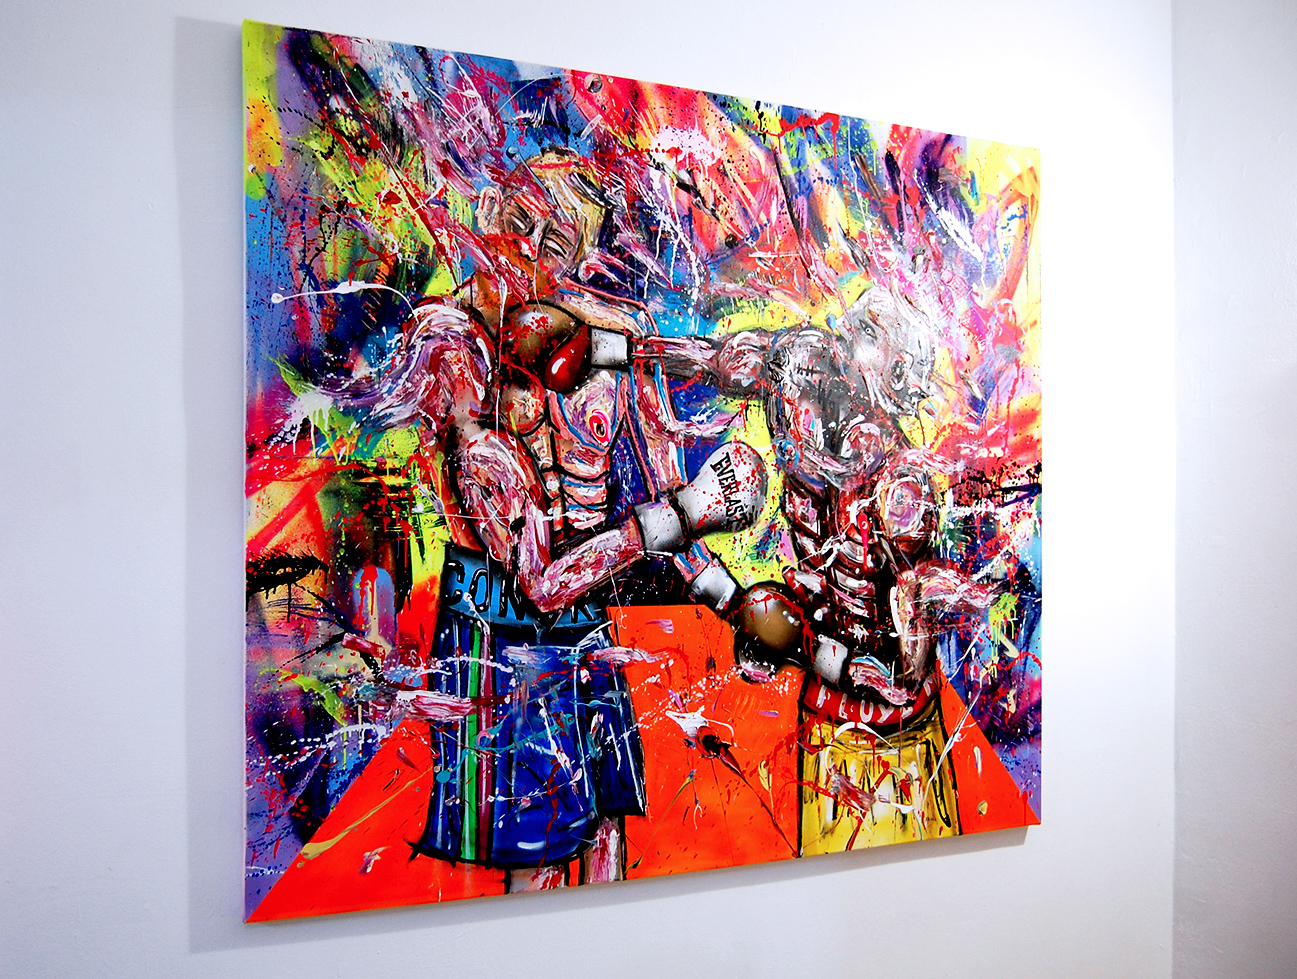 POWER, 2018, mixed media on canvas, 150x170cm